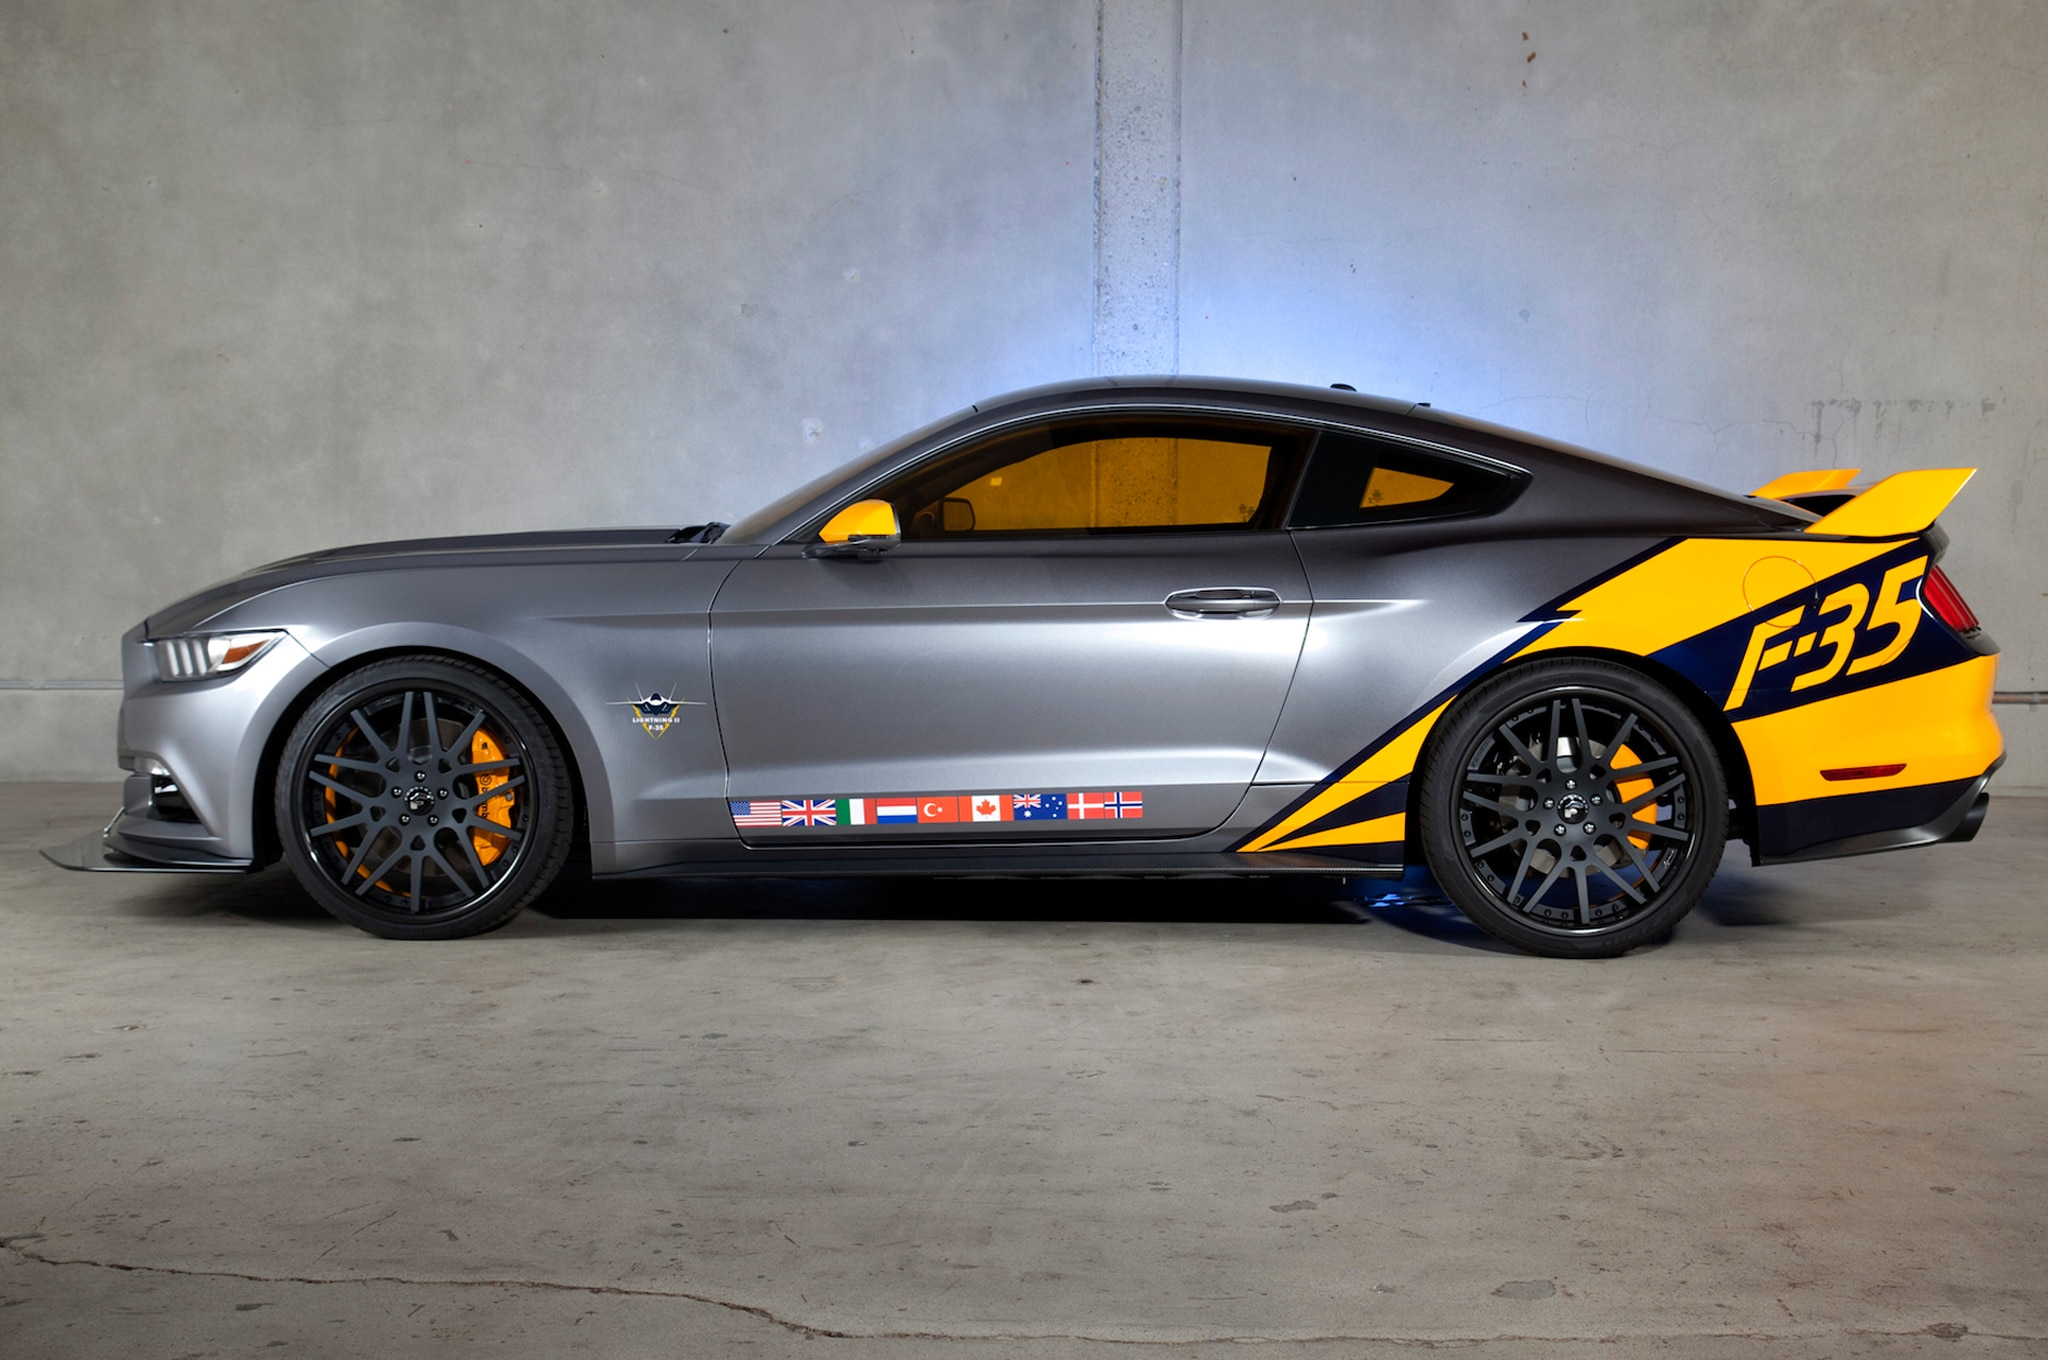 2015 Ford Mustang F 35 Lightning II Edition Side Profile1